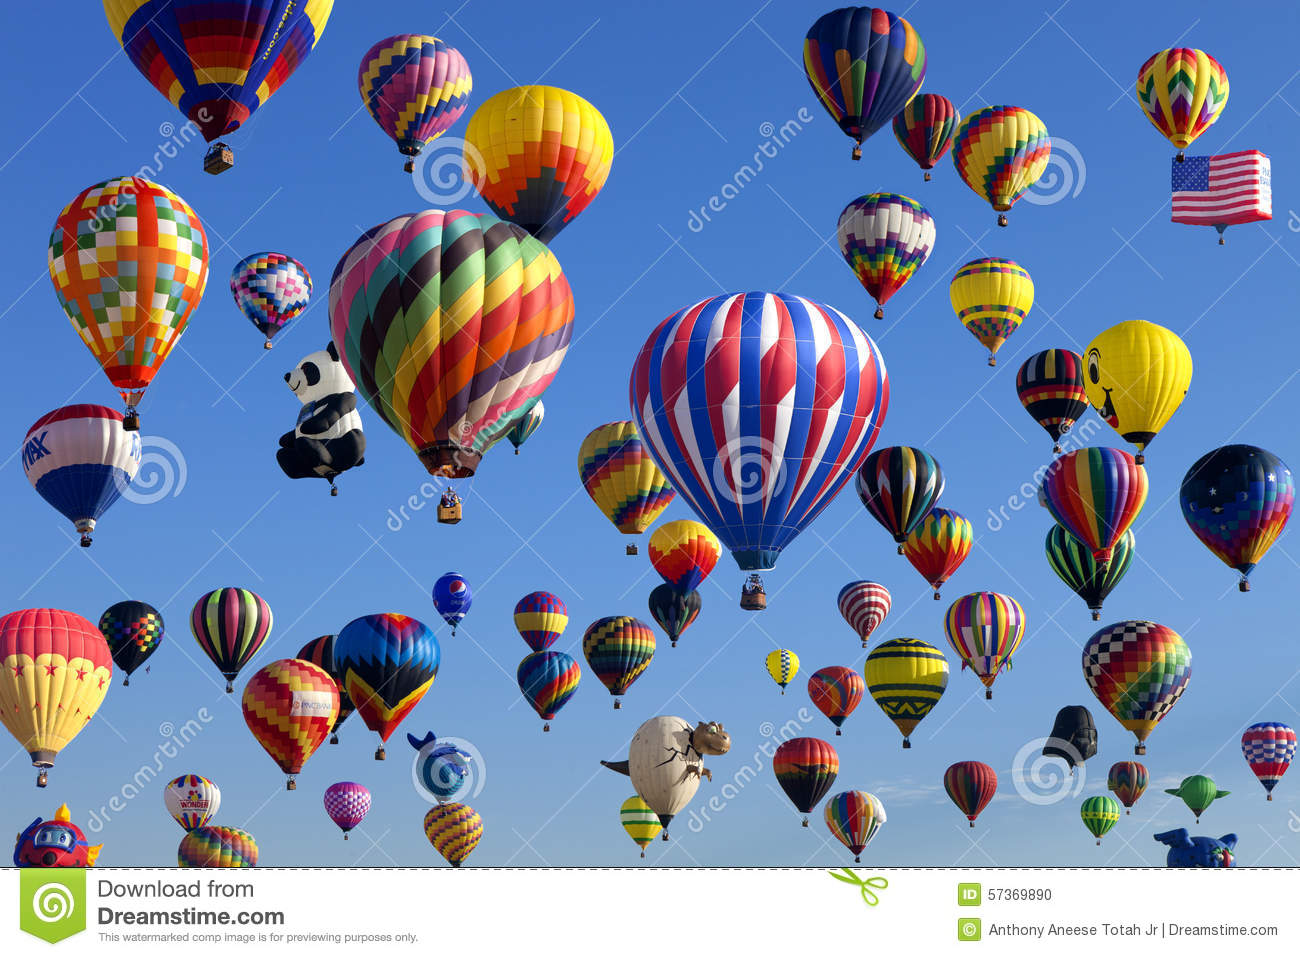 Mass Ascension - New Jersey Ballooning Festival